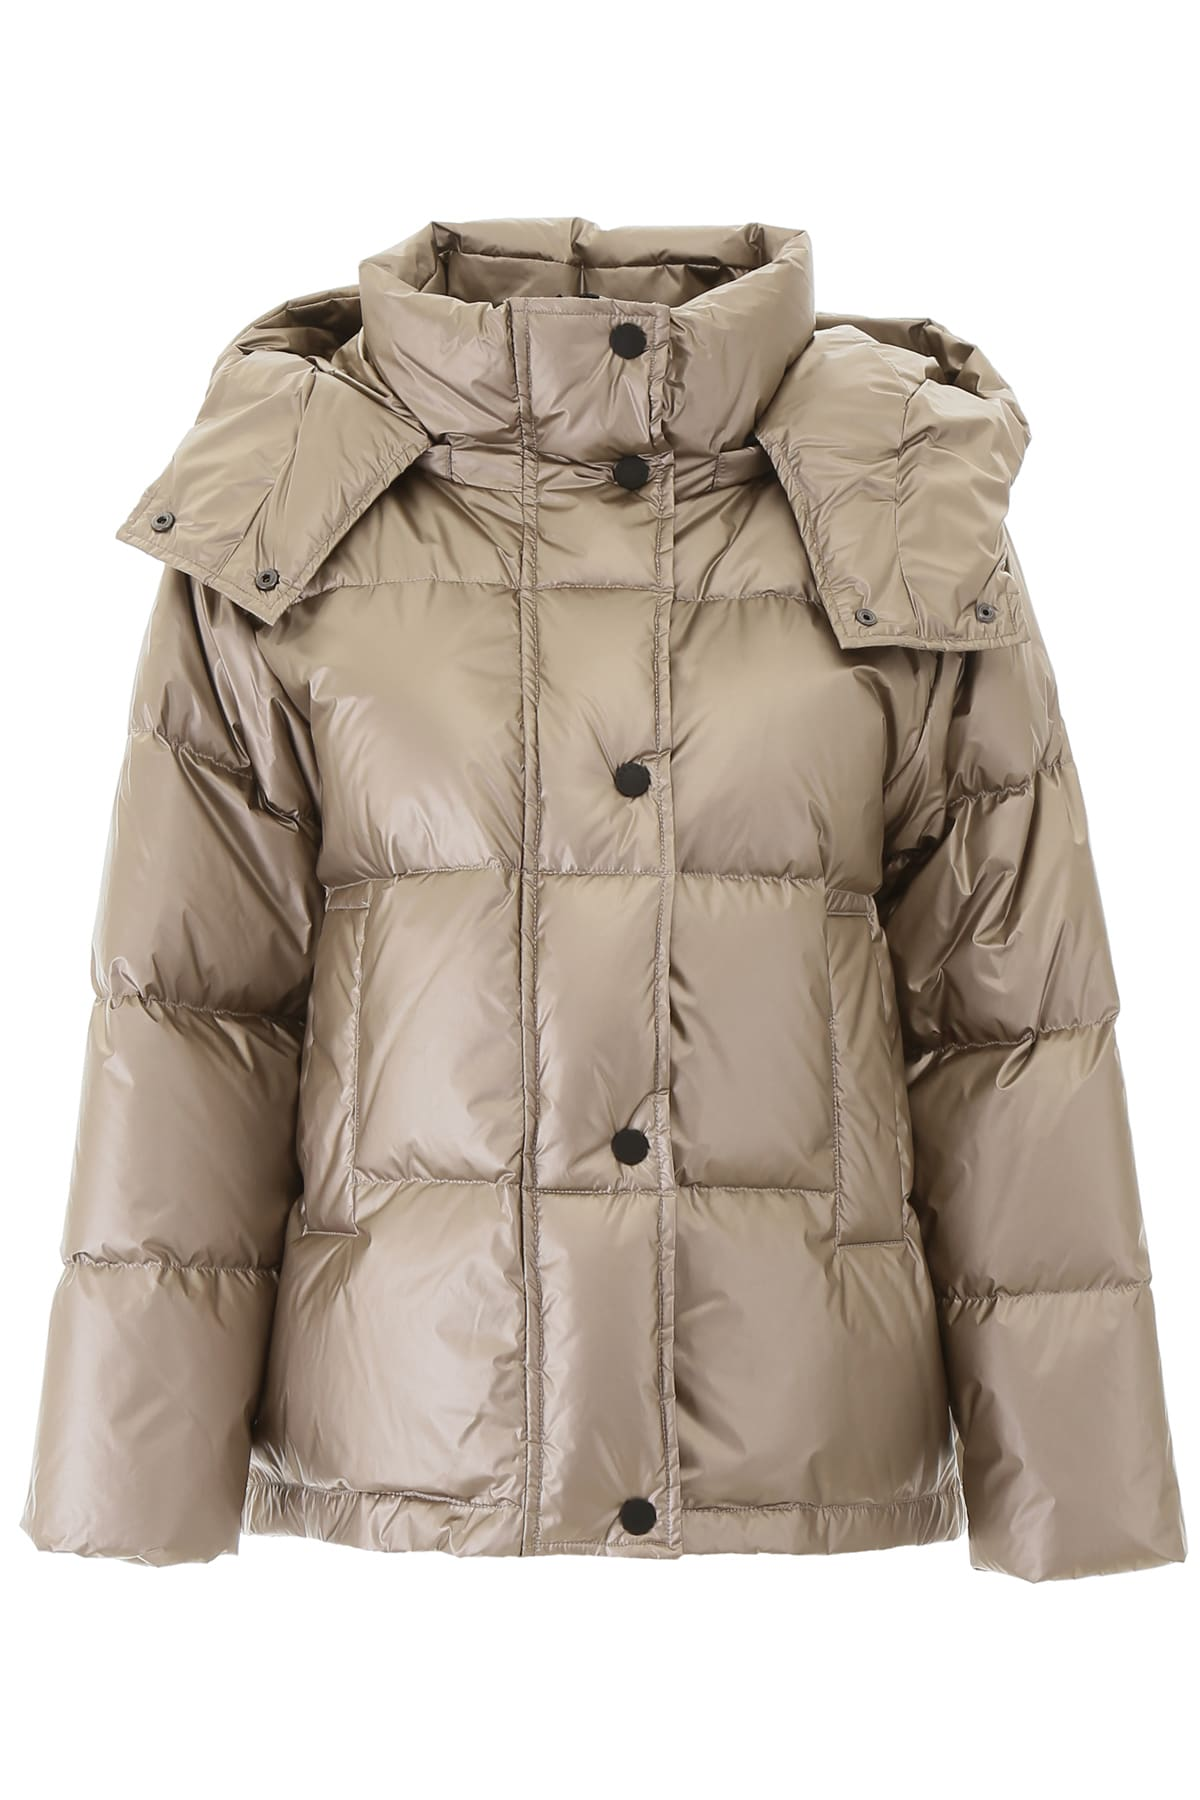 Weekend Max Mara Genepi Puffer Jacket